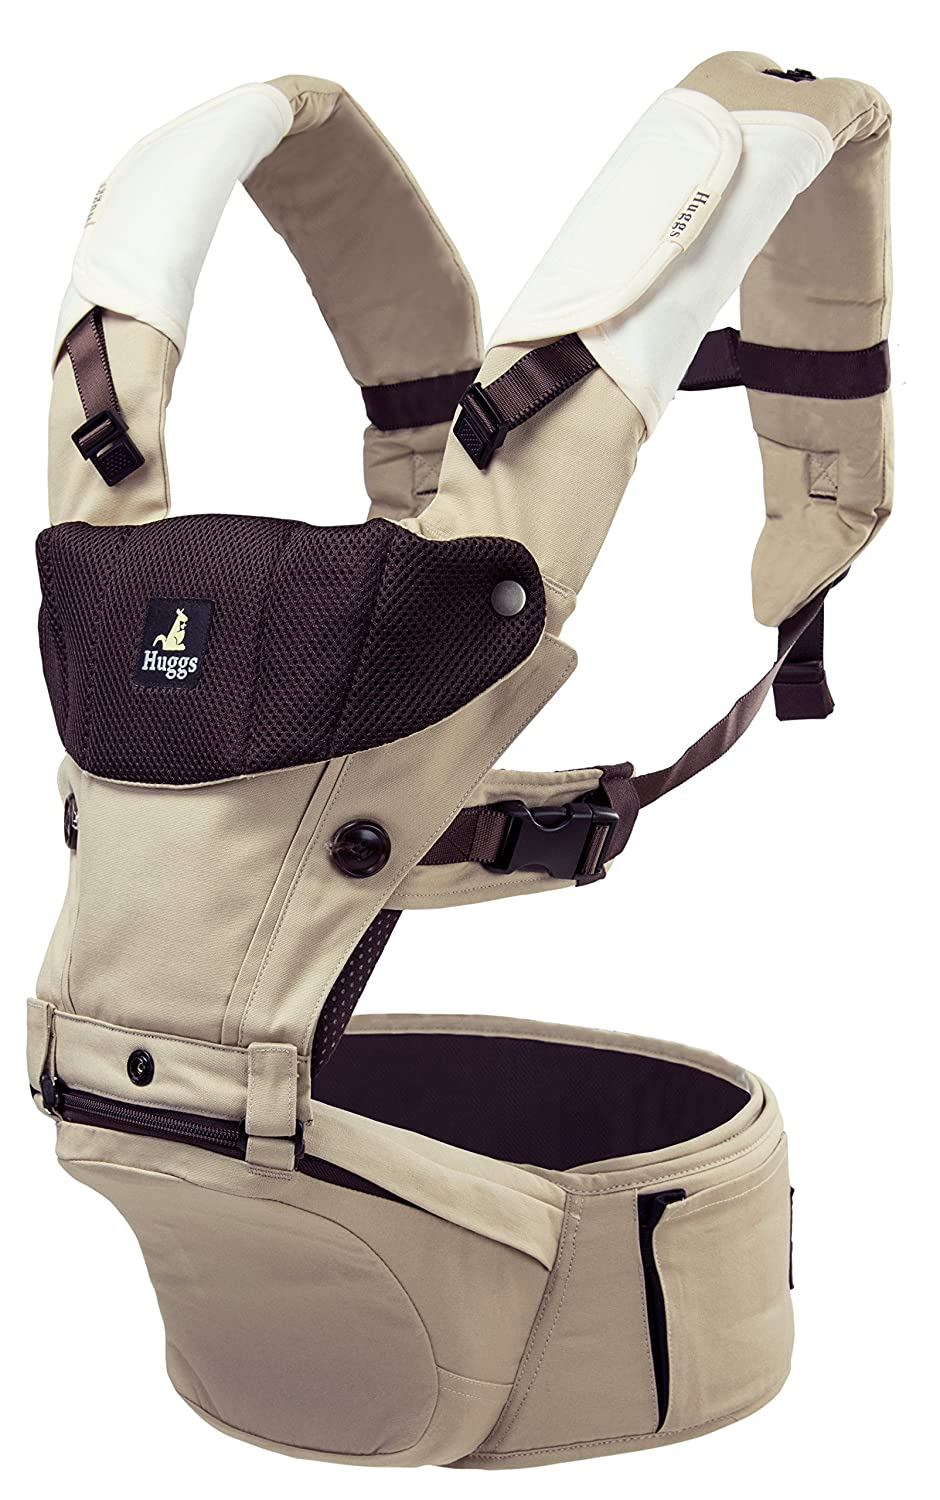 Abiie Huggs Baby Carrier Hip Seat Approved By Us Safety Standards Healthy Sitting Position